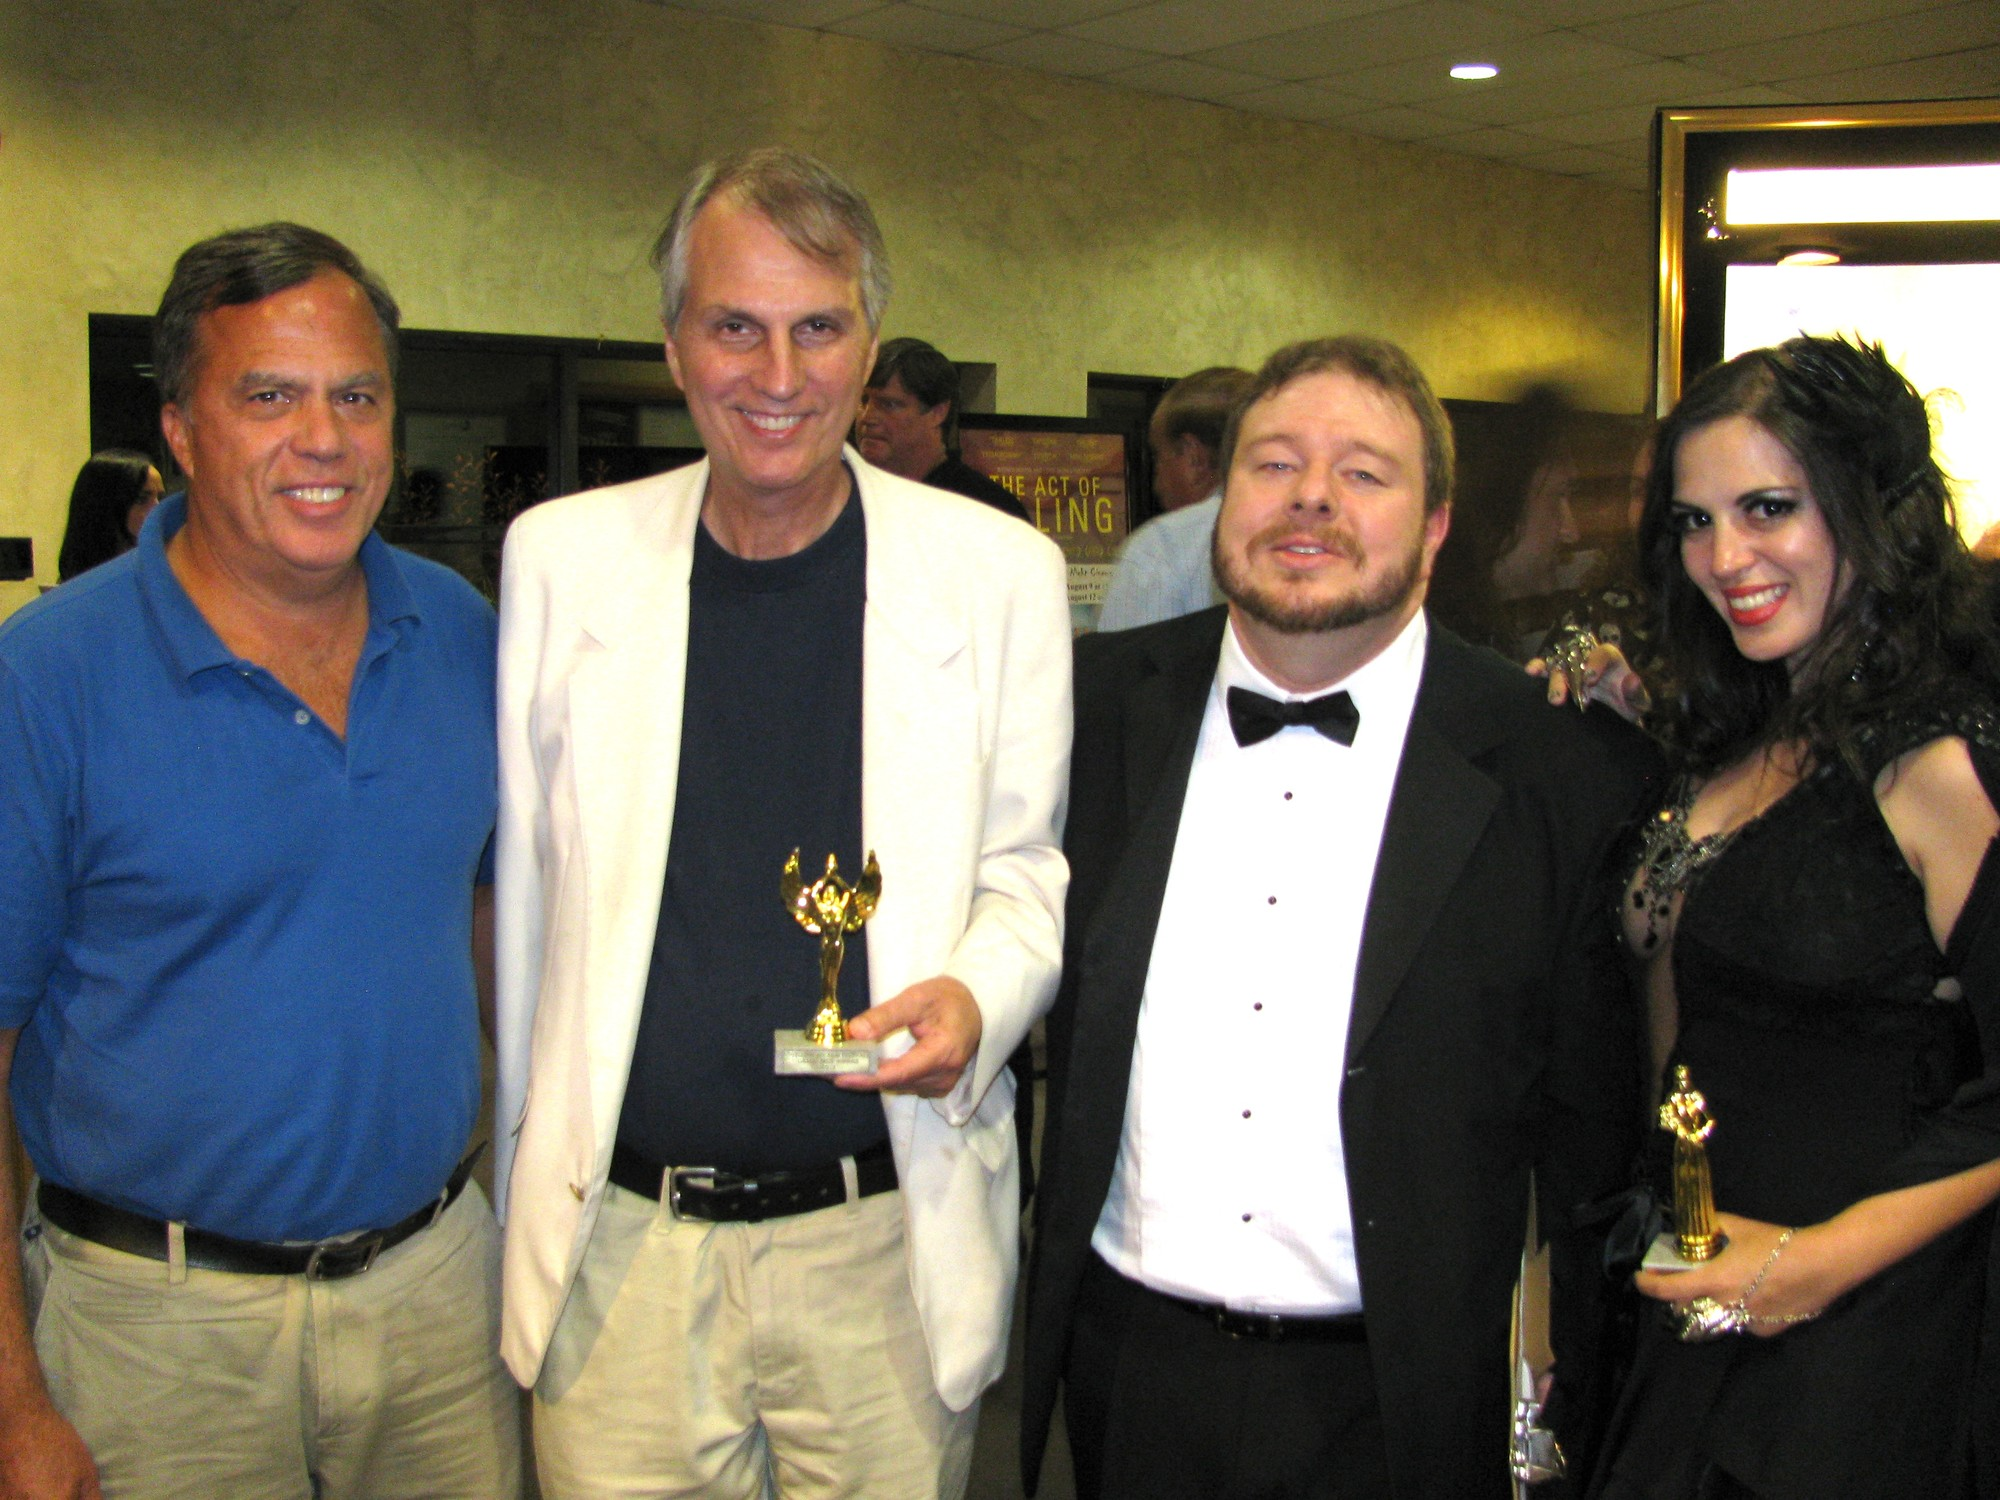 "Yellow Ape Film Festival Award presentation for grand prize to ""A Farewell to Arm"" at The Cinema Arts Centre in Huntington. From left, Philip Snyder, Robert M. Snyder, Jim Haggerty, Lady MacDeath aka Josephine Iannece. ""A Farewell to Arm"" also won the top prize at the Brainwash Drive-in Movie Festival in Oakland, CA this summer."